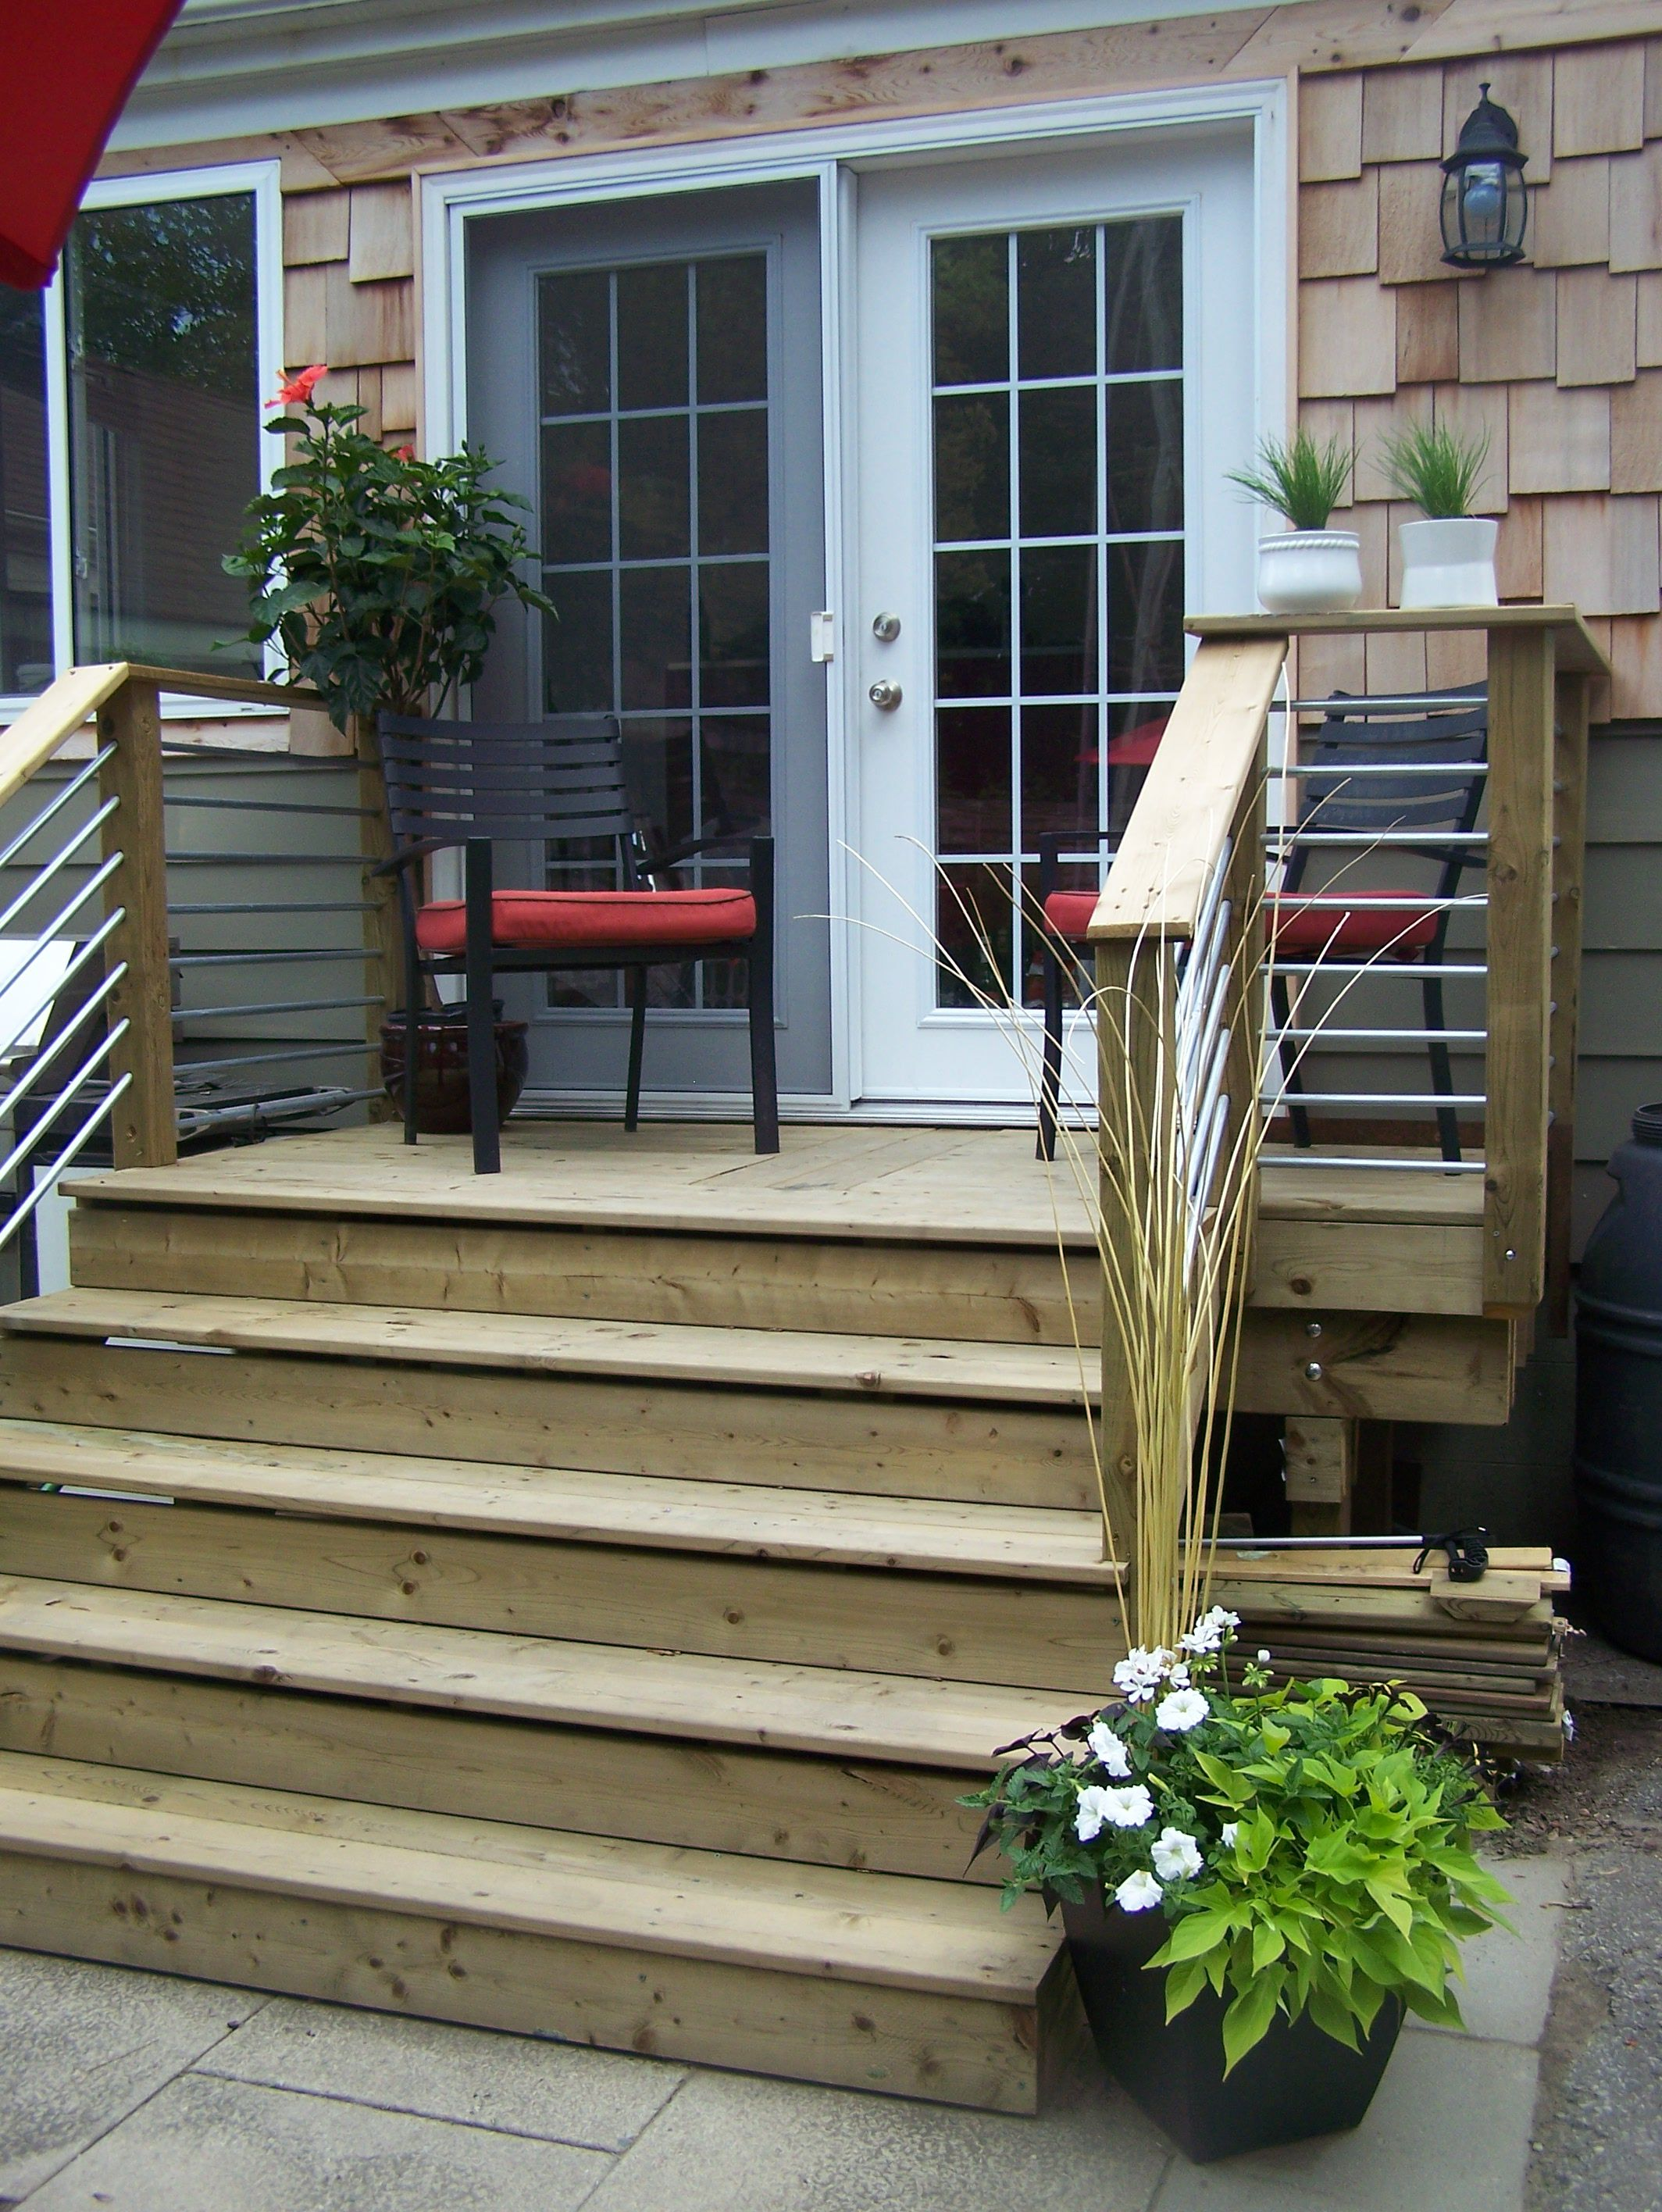 Our Back Deck Design Very Cost Effective Used Conduit